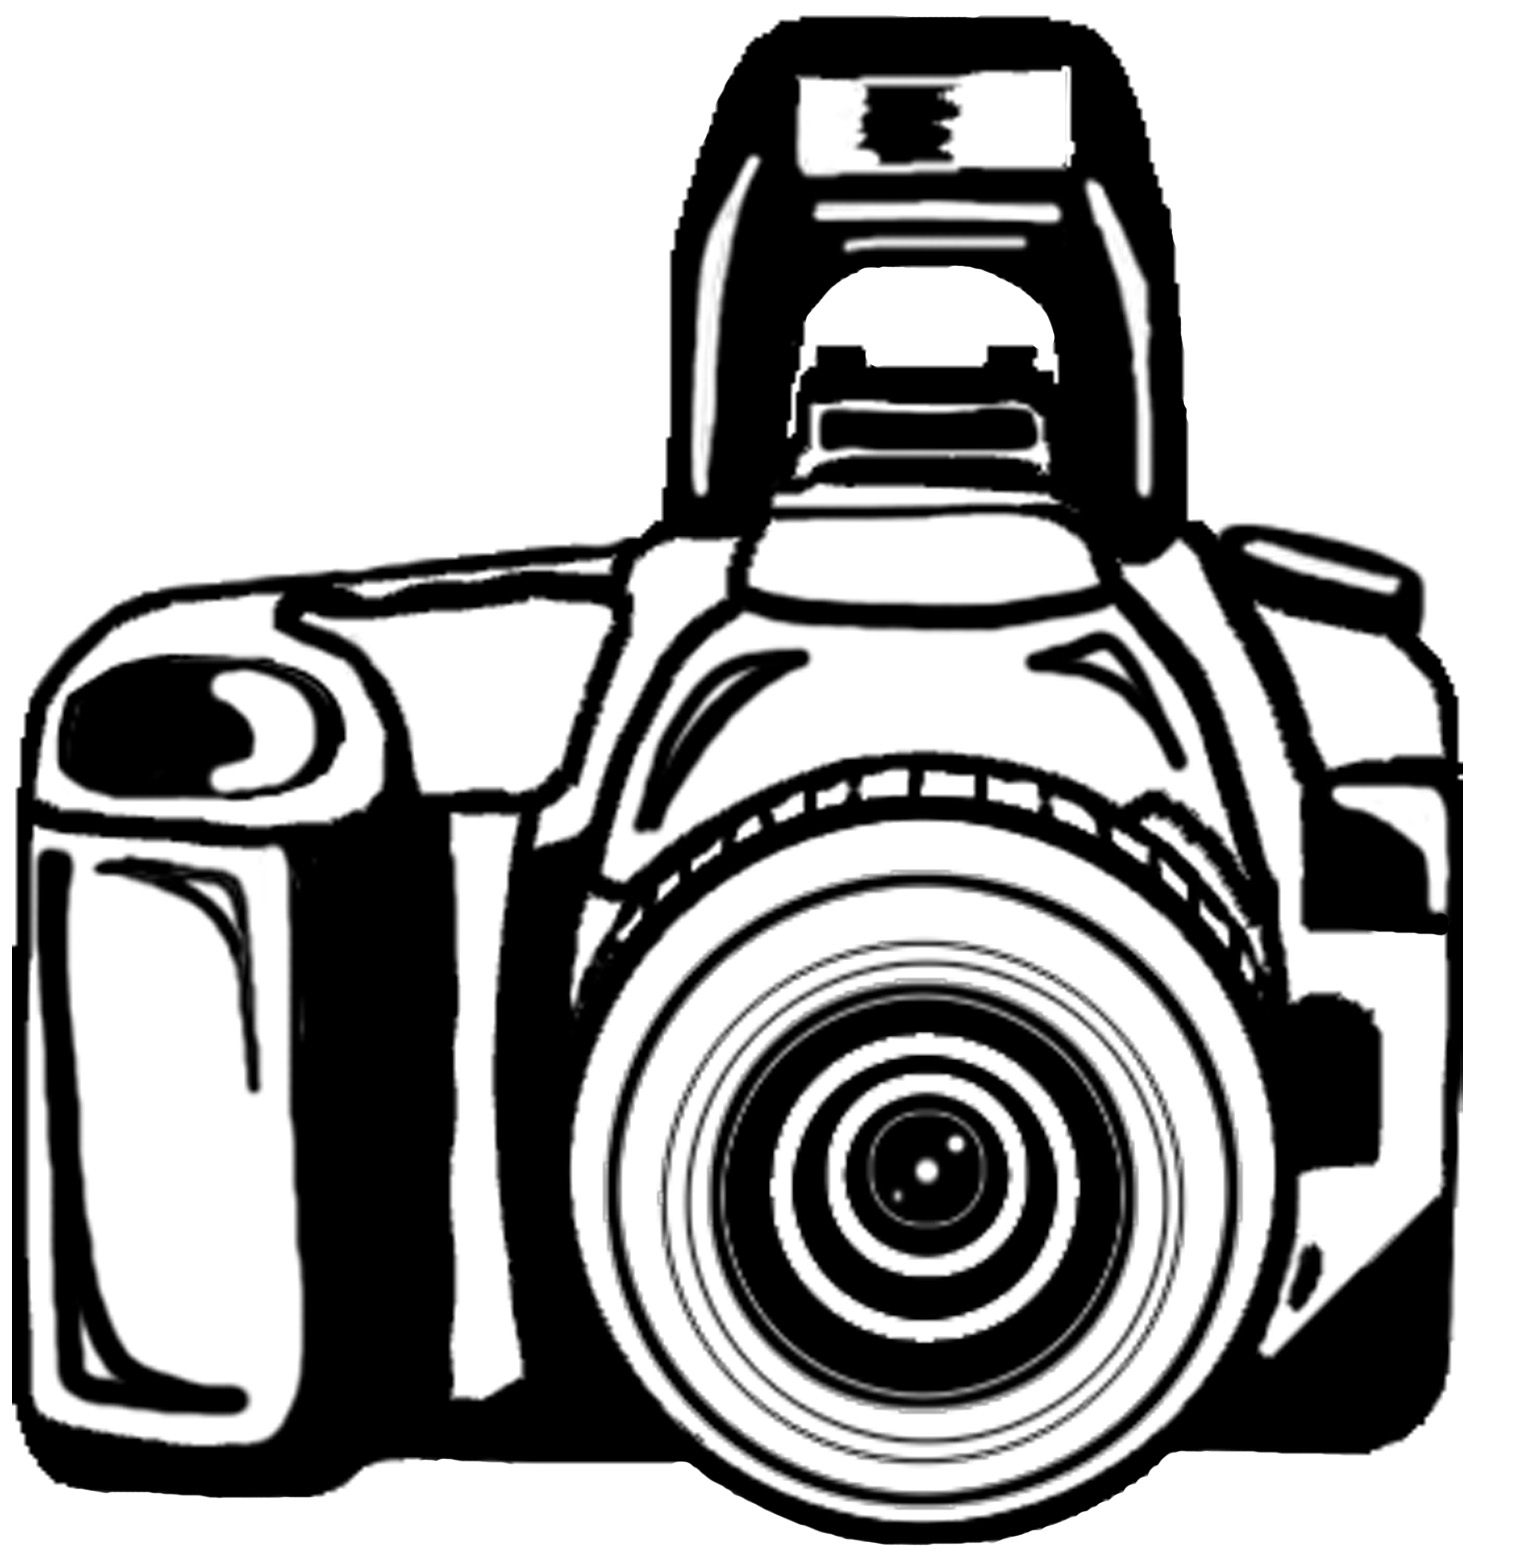 Cartoon Camera Clip Art - Cliparts co